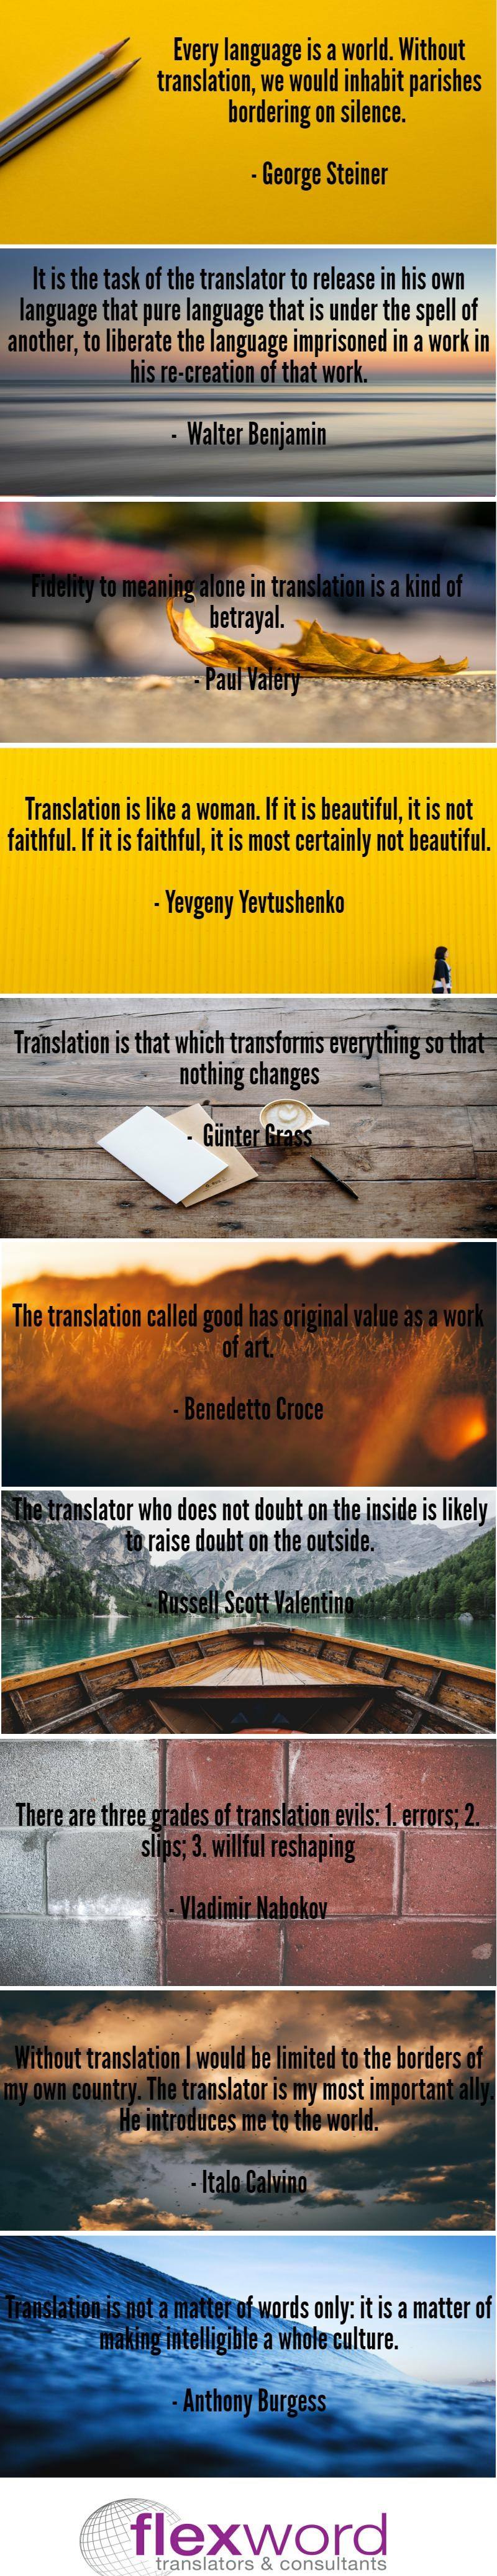 10 Of The Very Best Quotes About Translation Flexword Is The